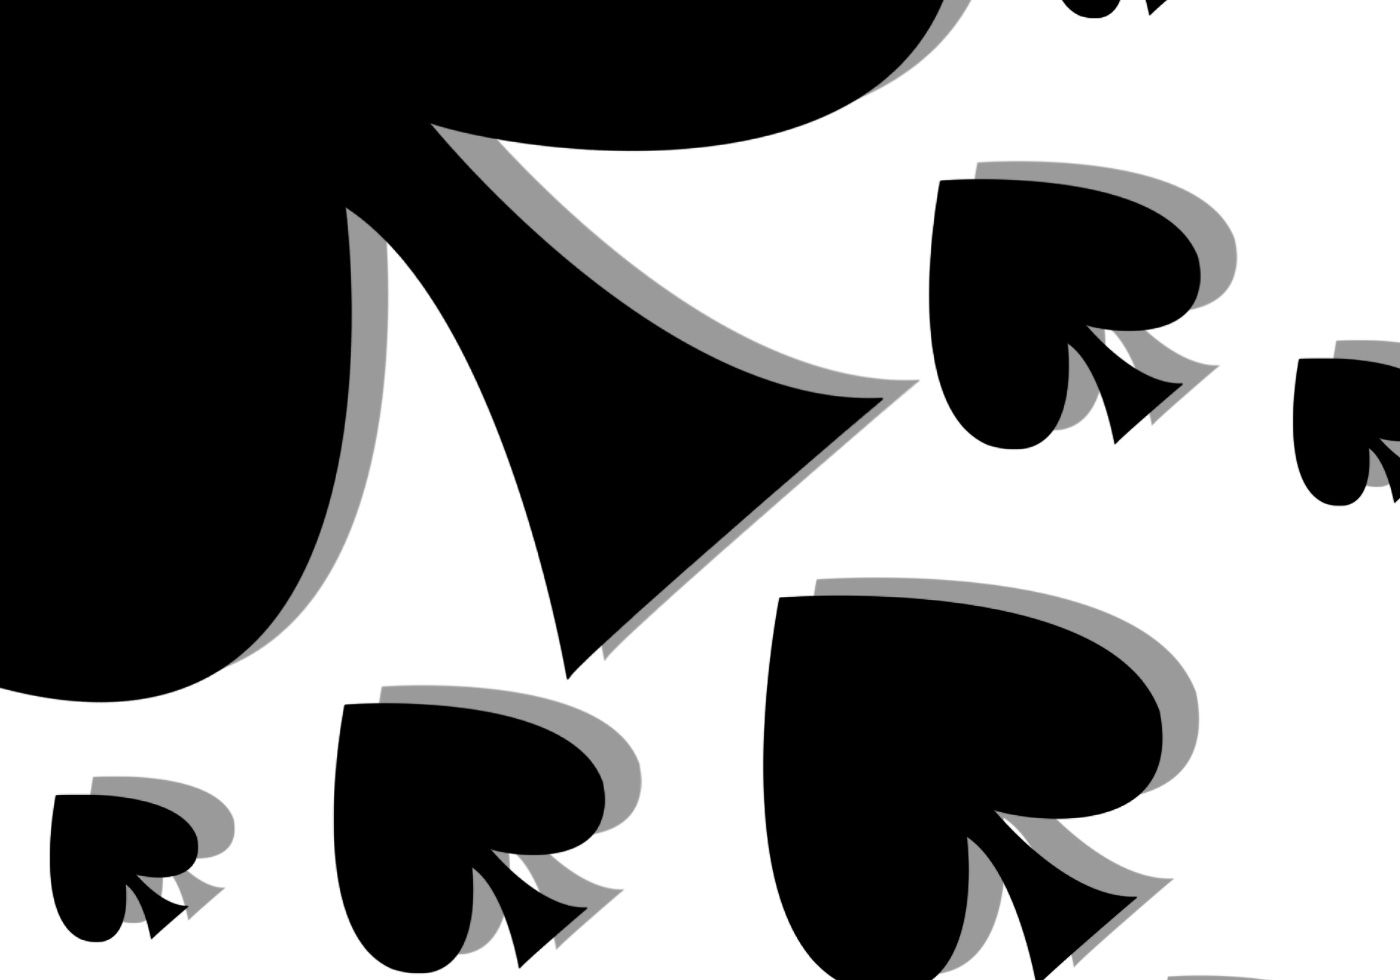 Spades Free Photoshop Brushes At Brusheezy